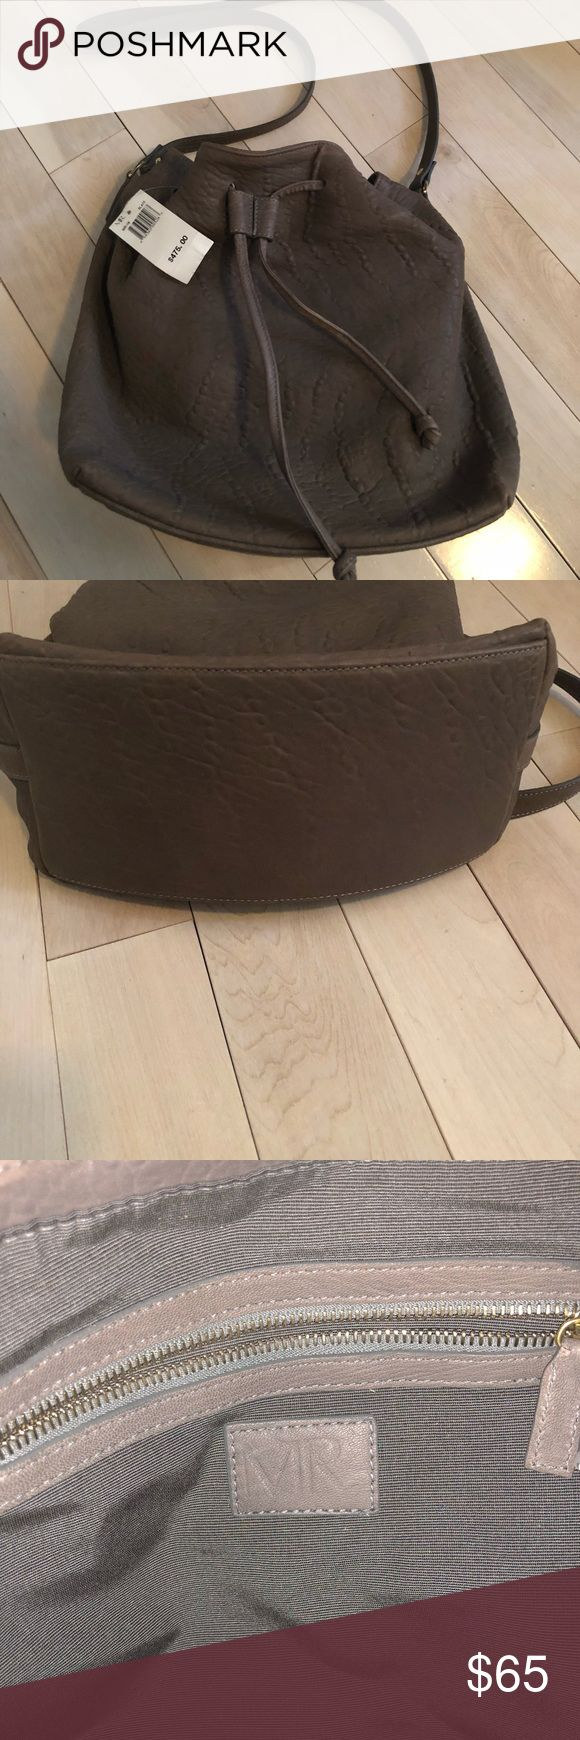 MR Bucket Handbag Brand new never worn Mr leather bucket bag. Very stylish, spacious and gorgeous neutral color. Comes from pet free, smoke free home. MR Bags Crossbody Bags